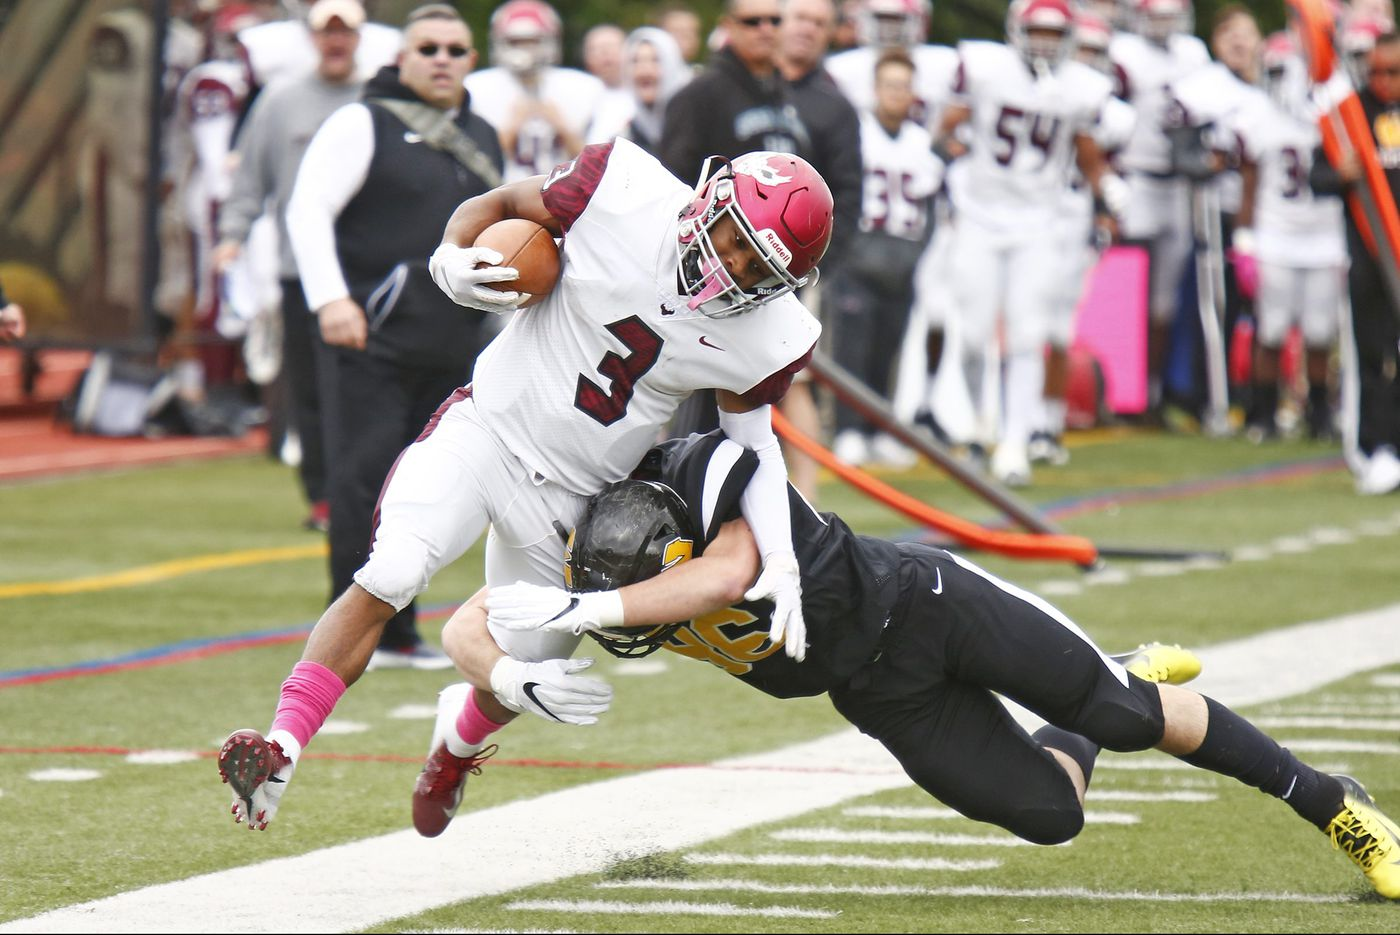 St. Joe's Prep rocks Archbishop Wood behind Marques Mason